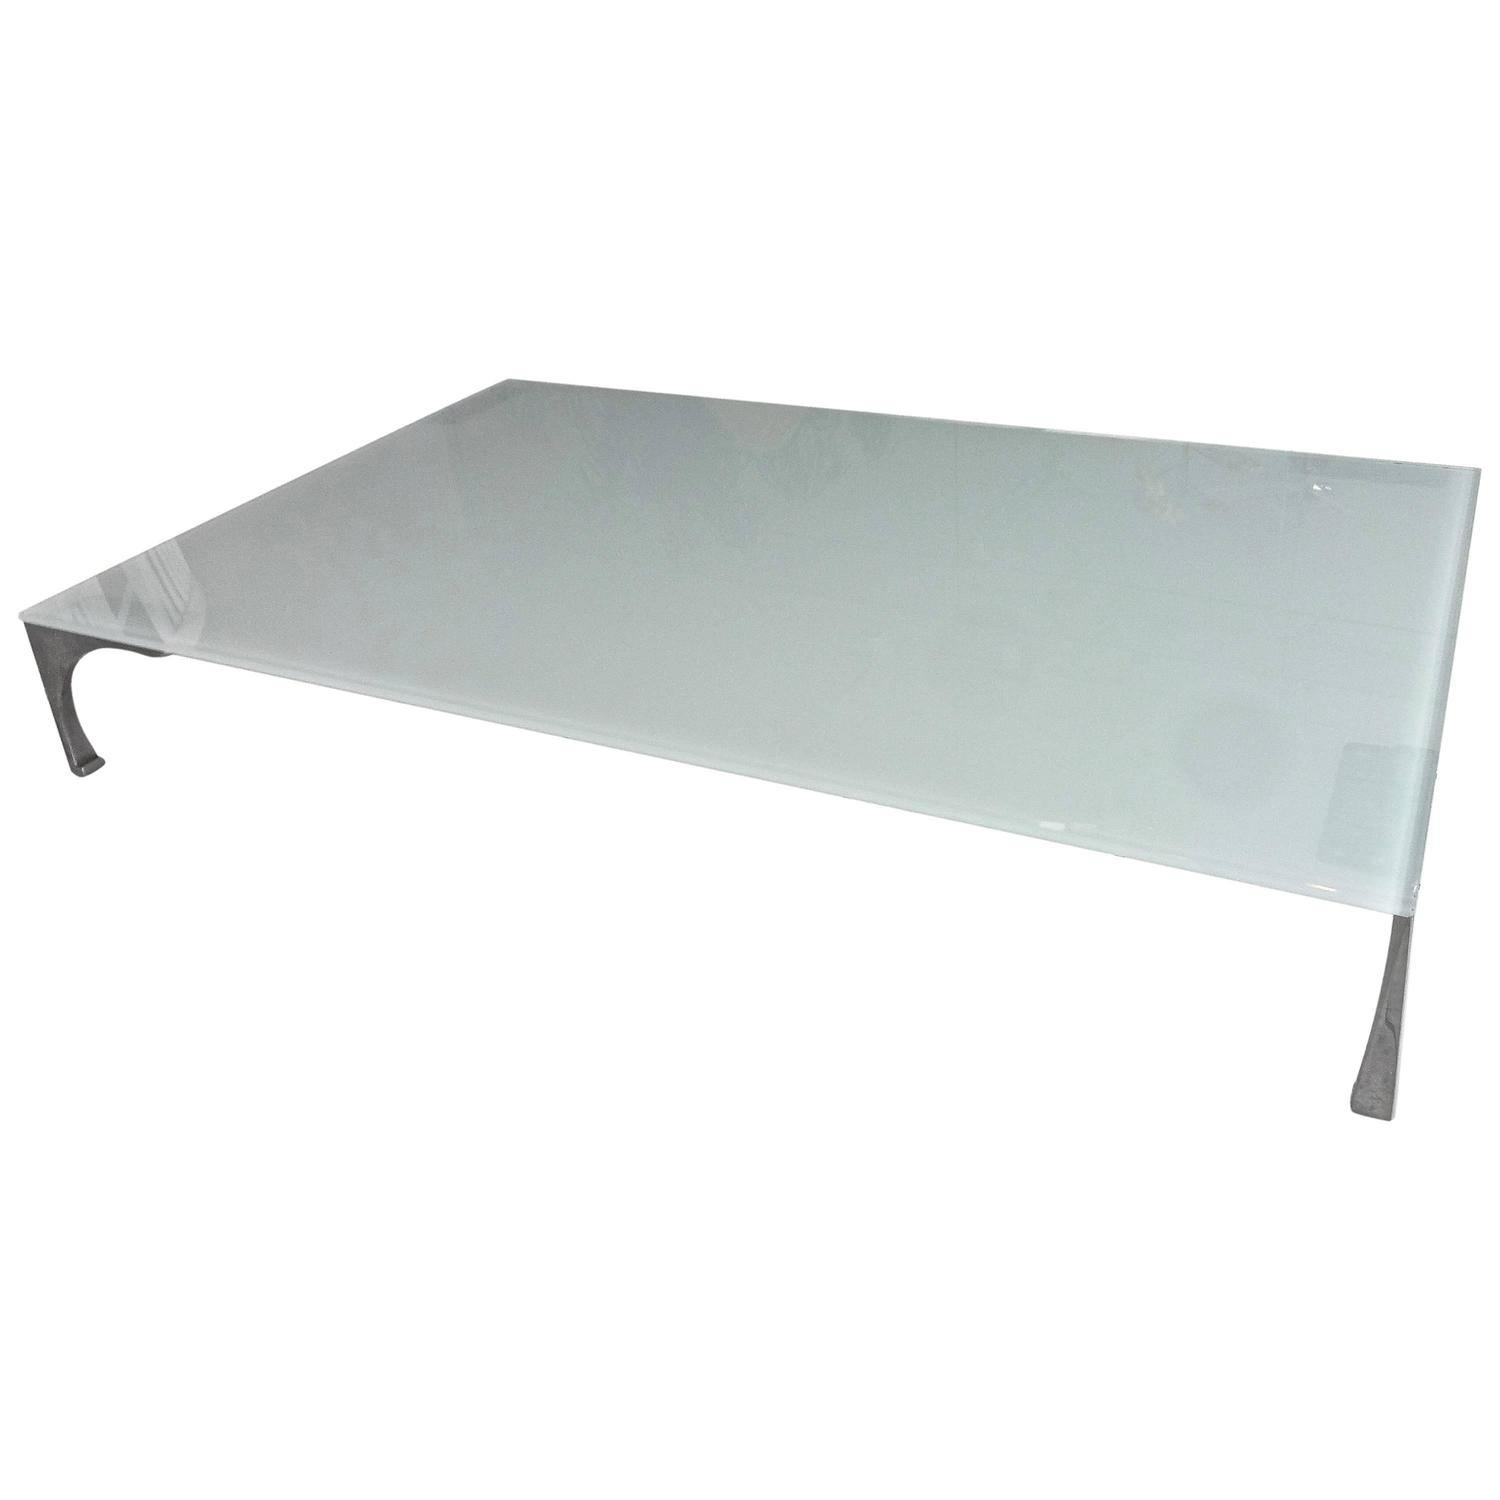 Roche bobois steel and glass cocktail coffee table for sale at 1stdibs Roche bobois coffee table